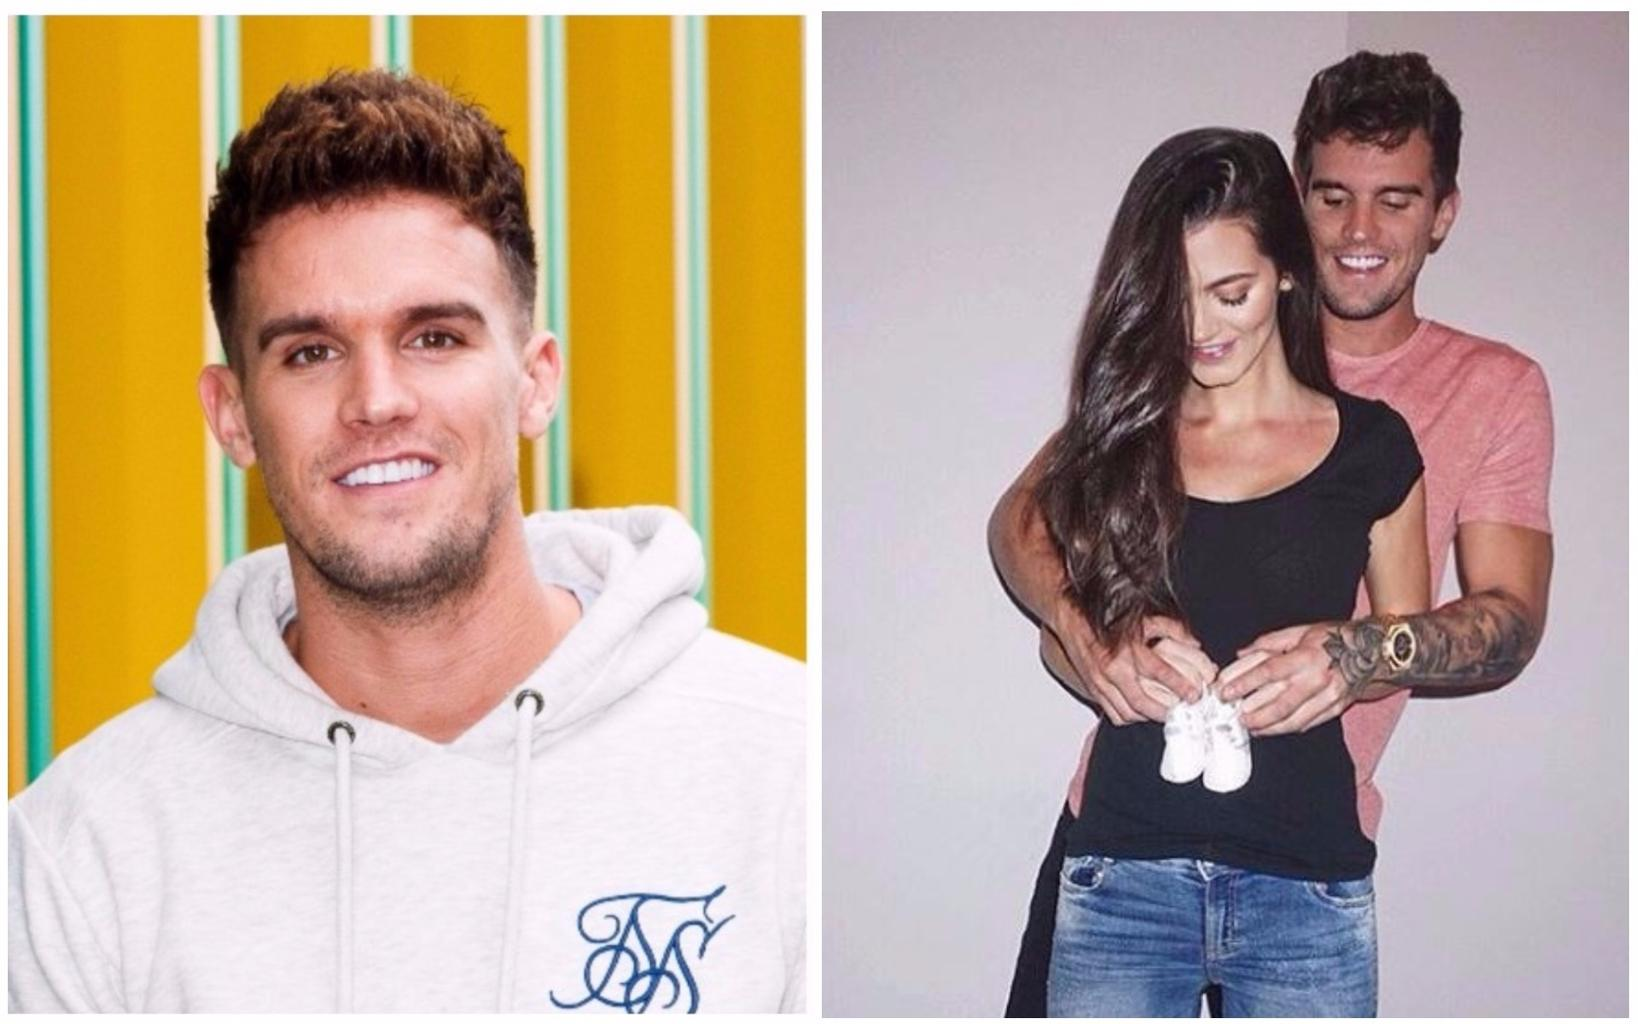 Gaz Beadle And Emma Mcvey Reveal Gender Of Their Baby Undefined